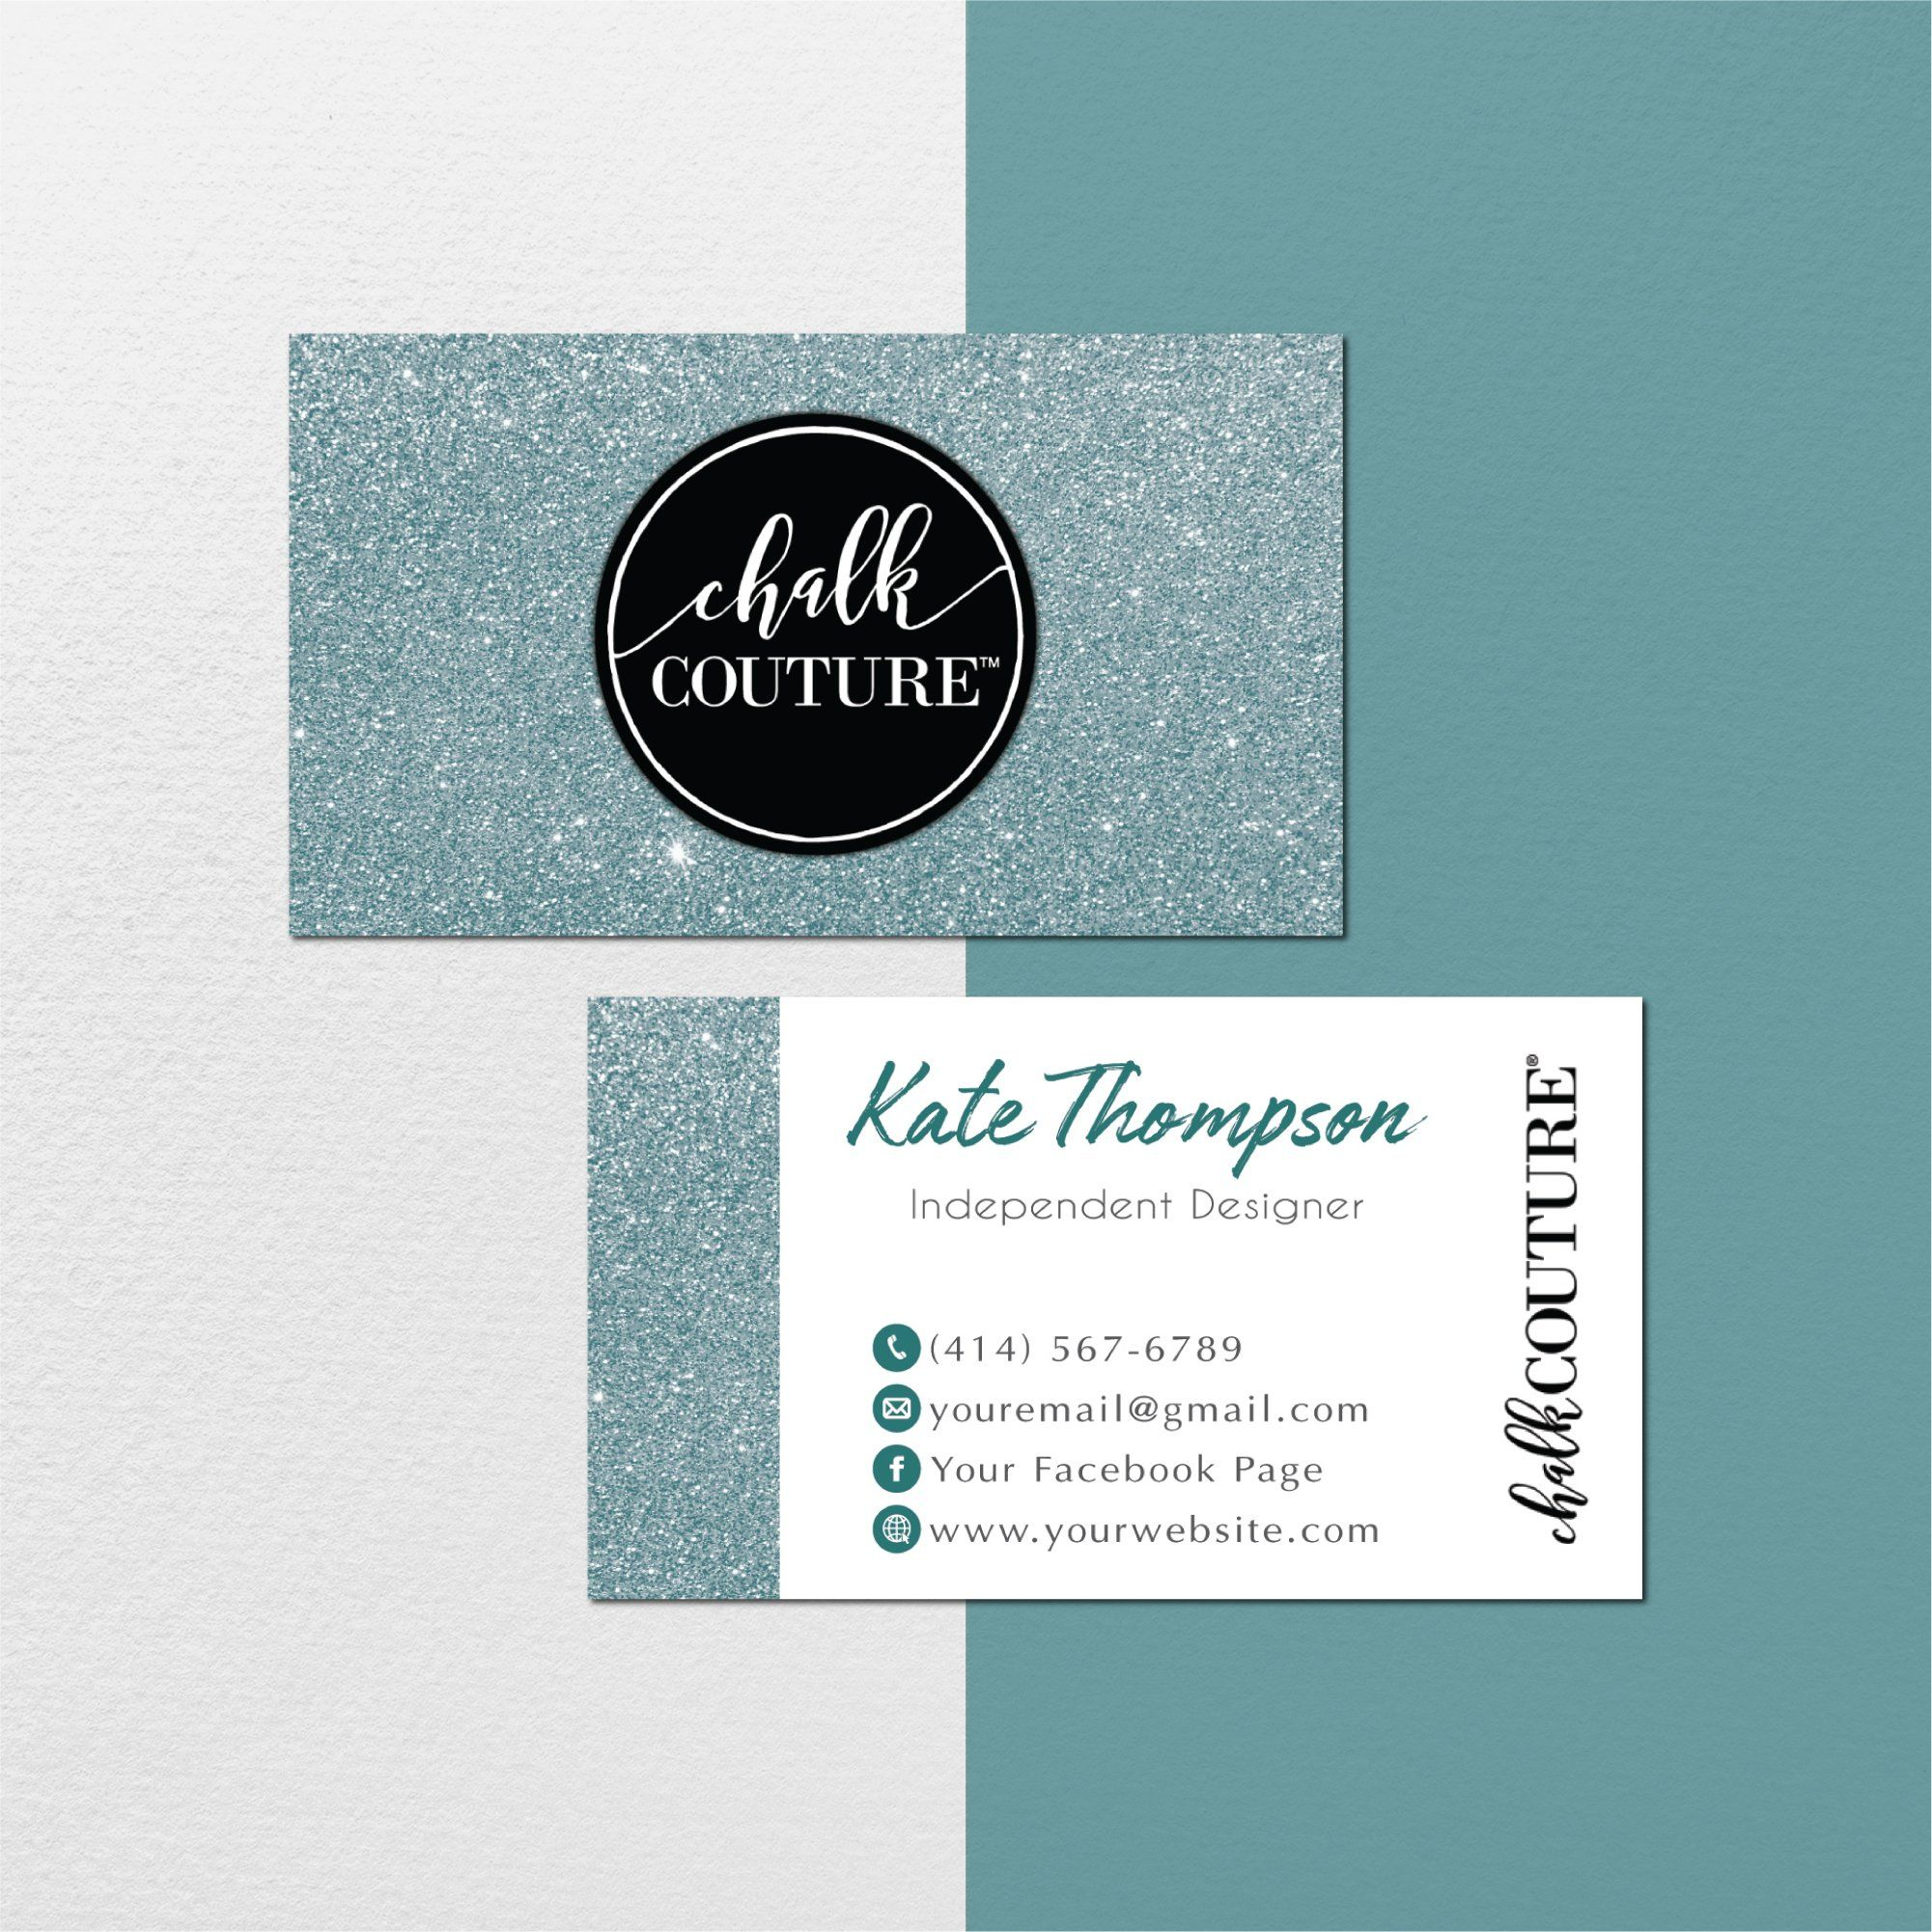 Chalk Couture Business Cards Personalized Chalk Couture Template Cc01 Business Card Size Personal Cards Cards